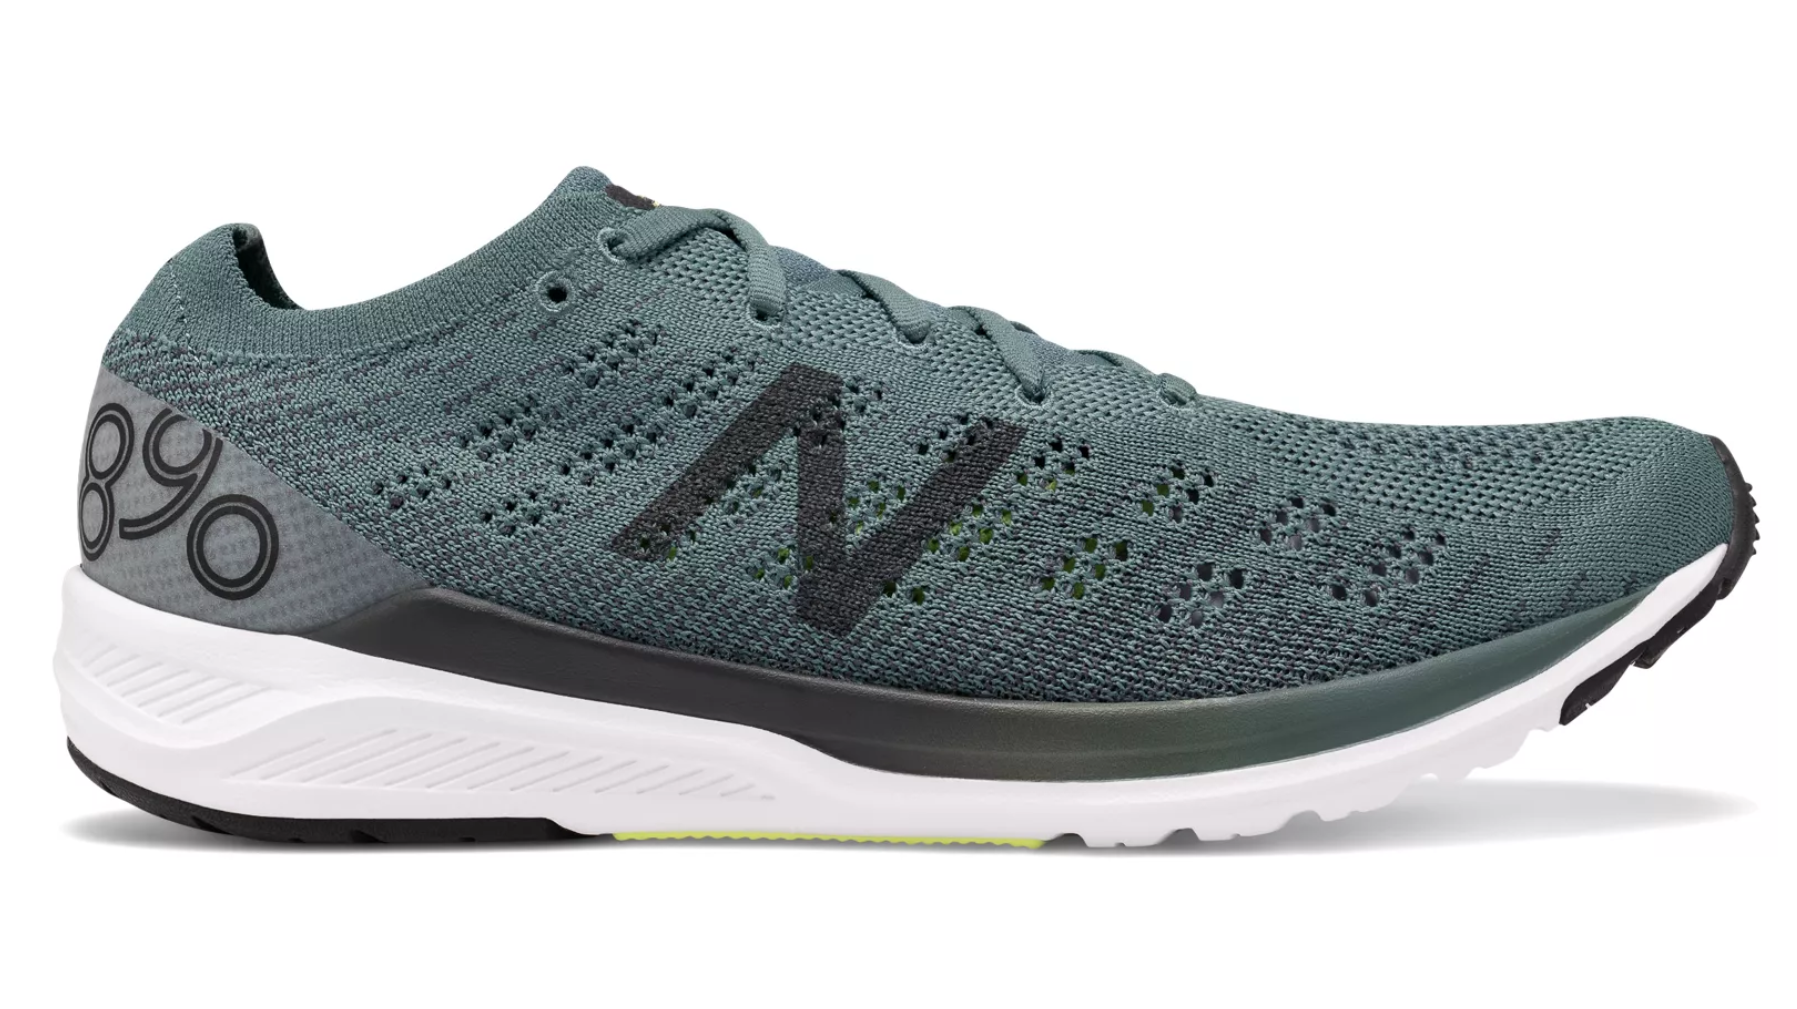 7c067d57cfc95 Best New Balance Running Shoes | New Balance Shoe Reviews 2019